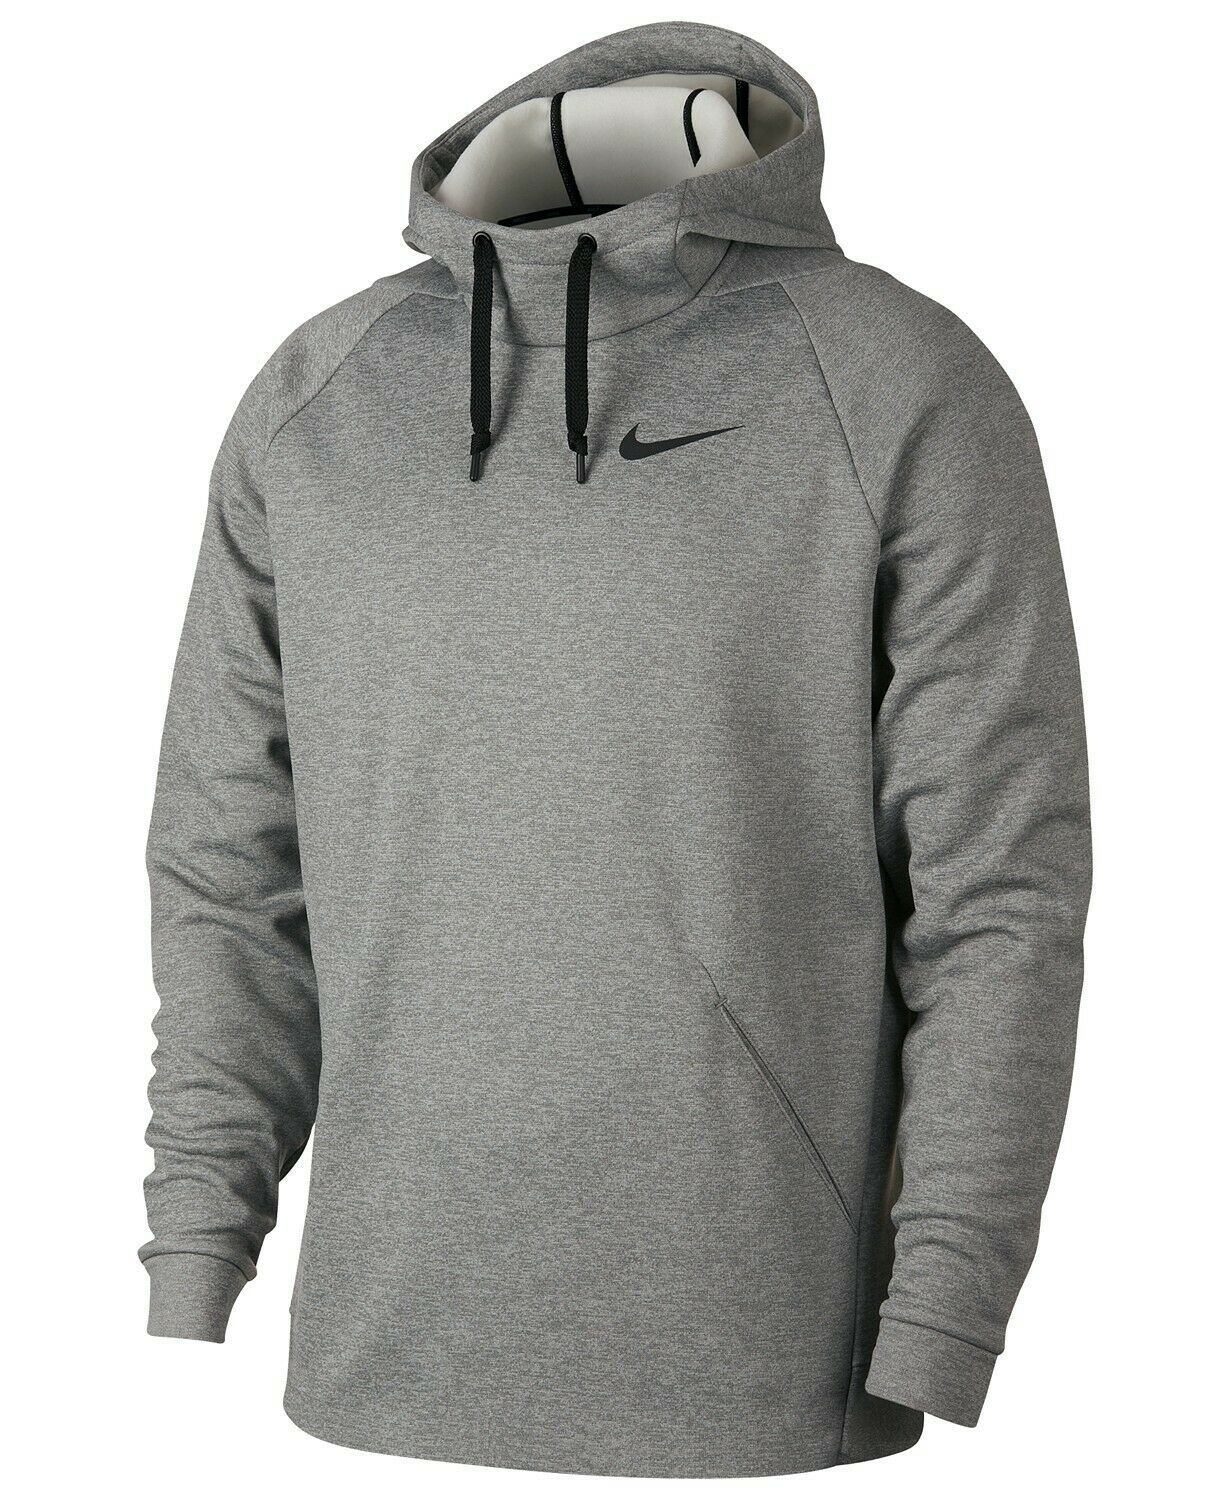 online store 100% genuine new specials Nike Dri Fit Hoodie: 1 customer review and 190 listings